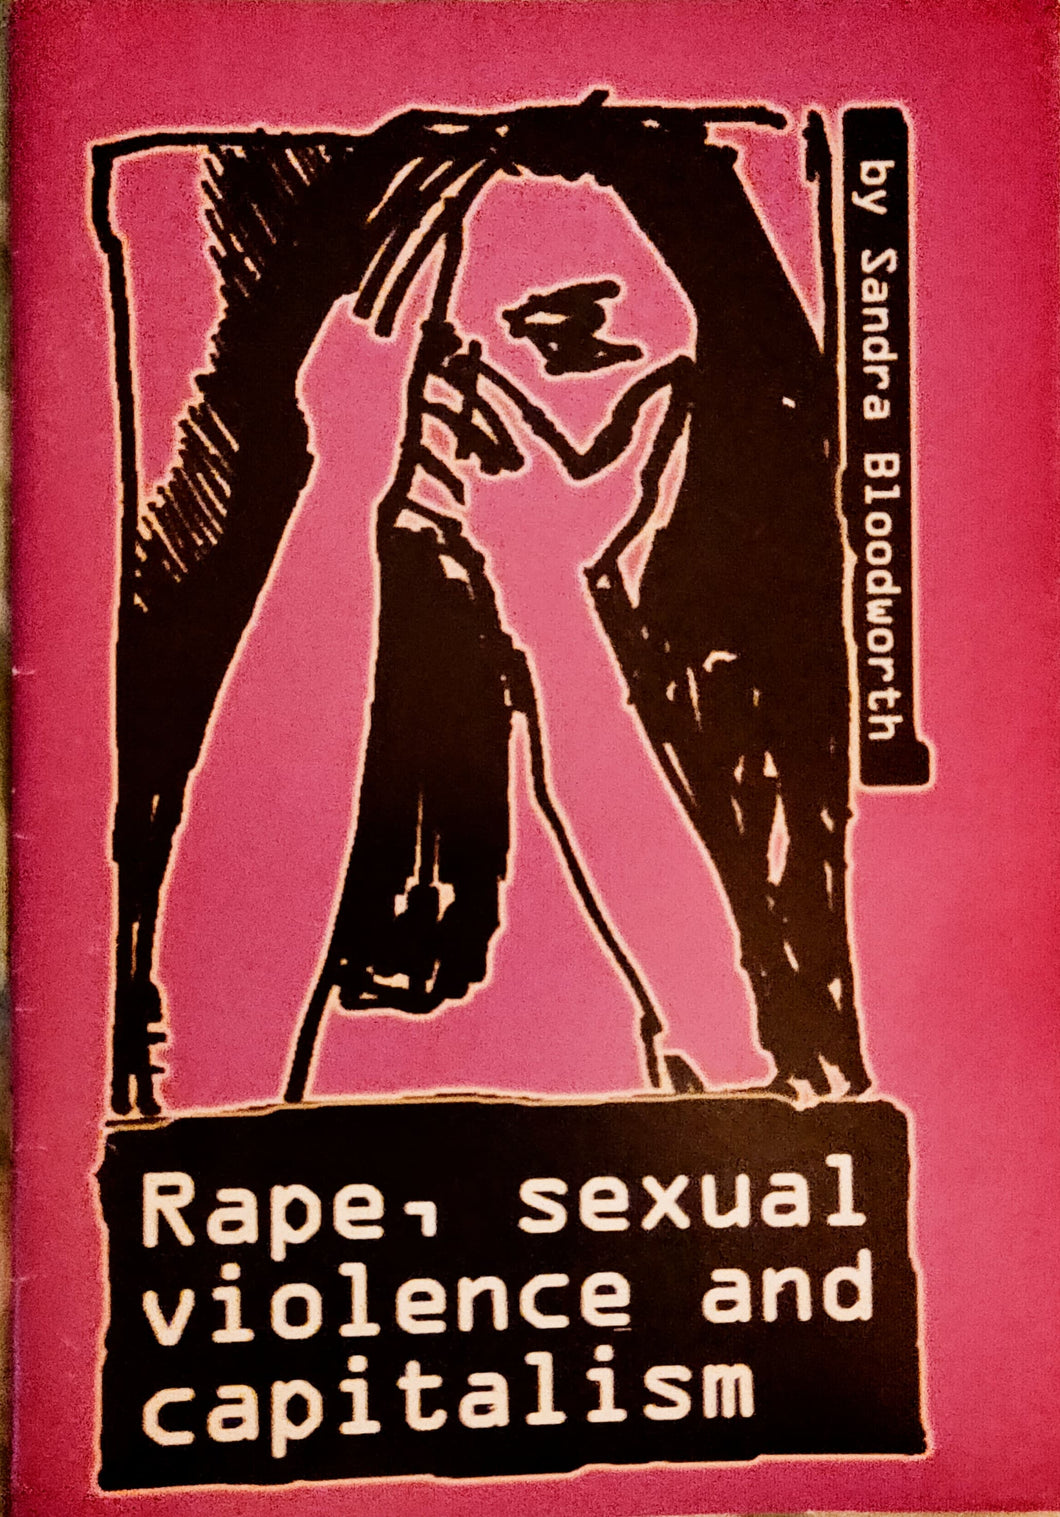 Rape, Sexual Violence & Capitalism